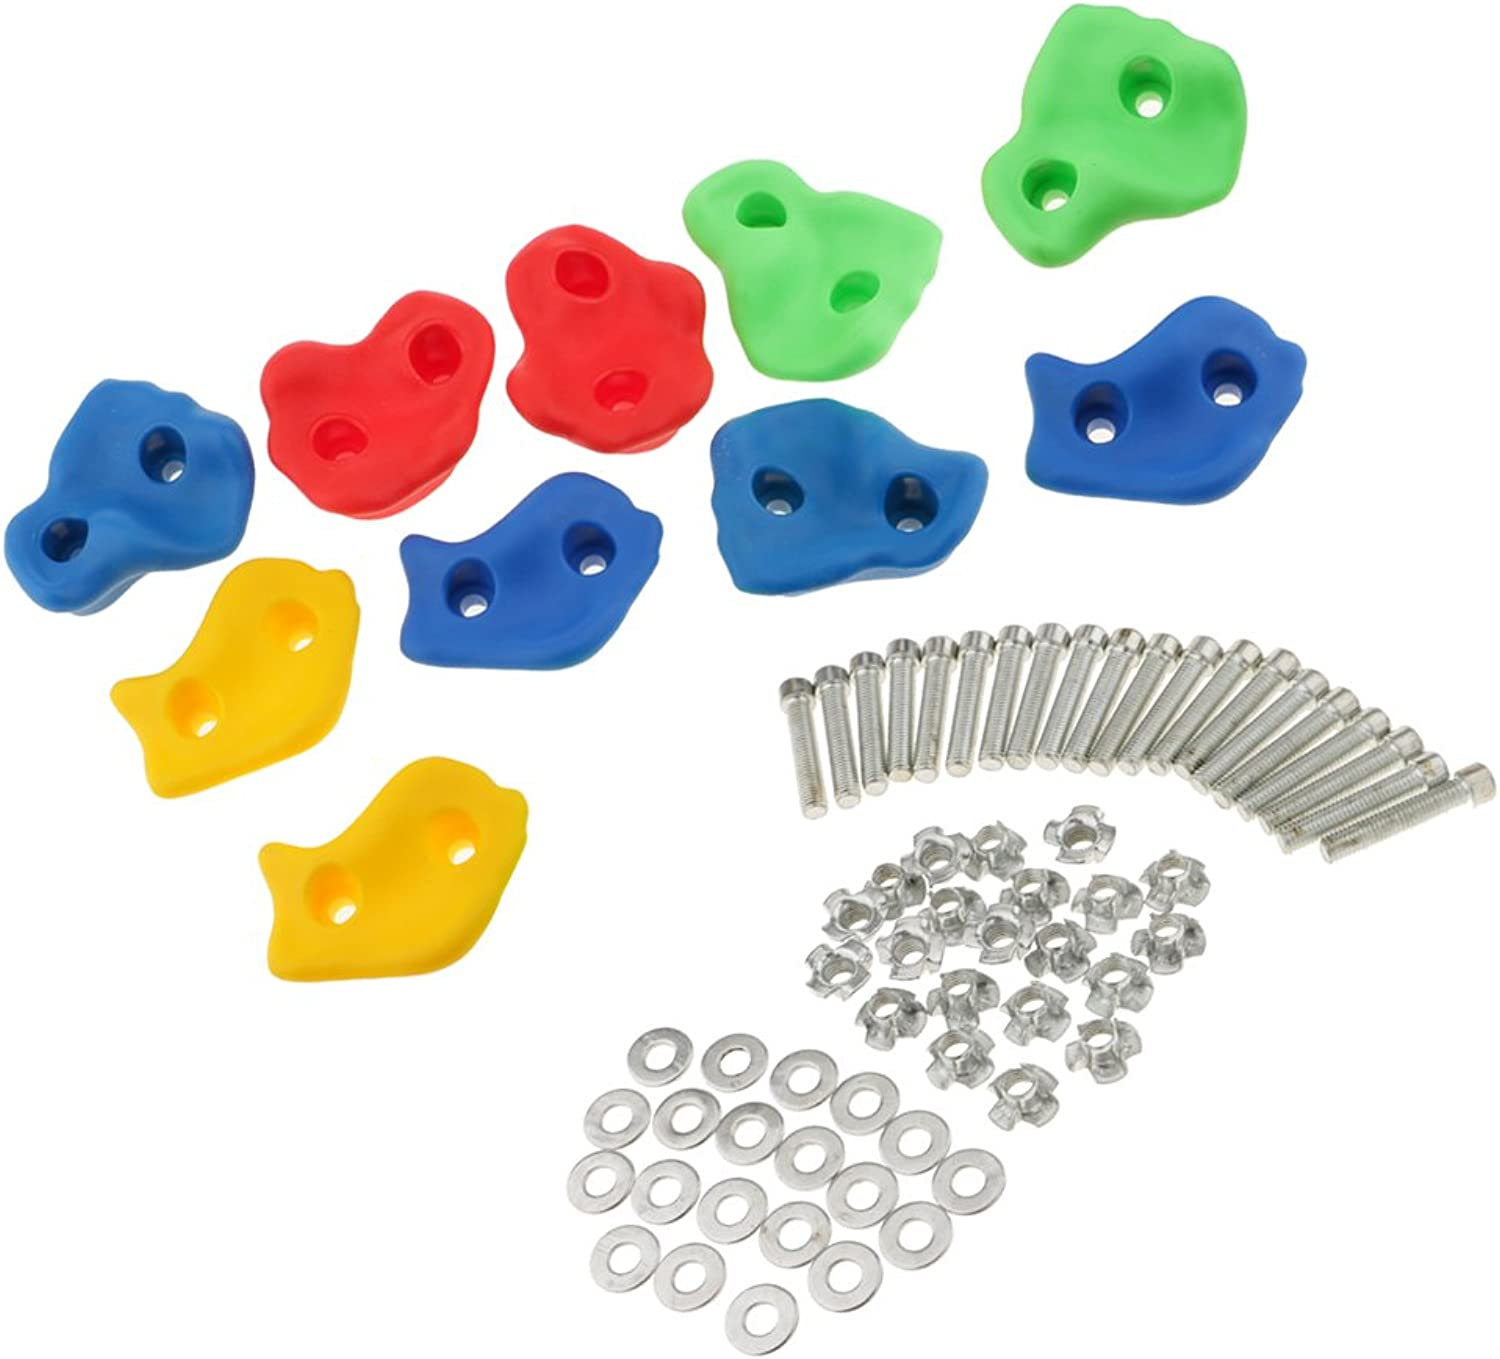 Fityle Rock Climbing Holds  10pc Climbing Holds  Mounting Hardware Included  Climbing Rocks for DIY Rock Climbing Wall